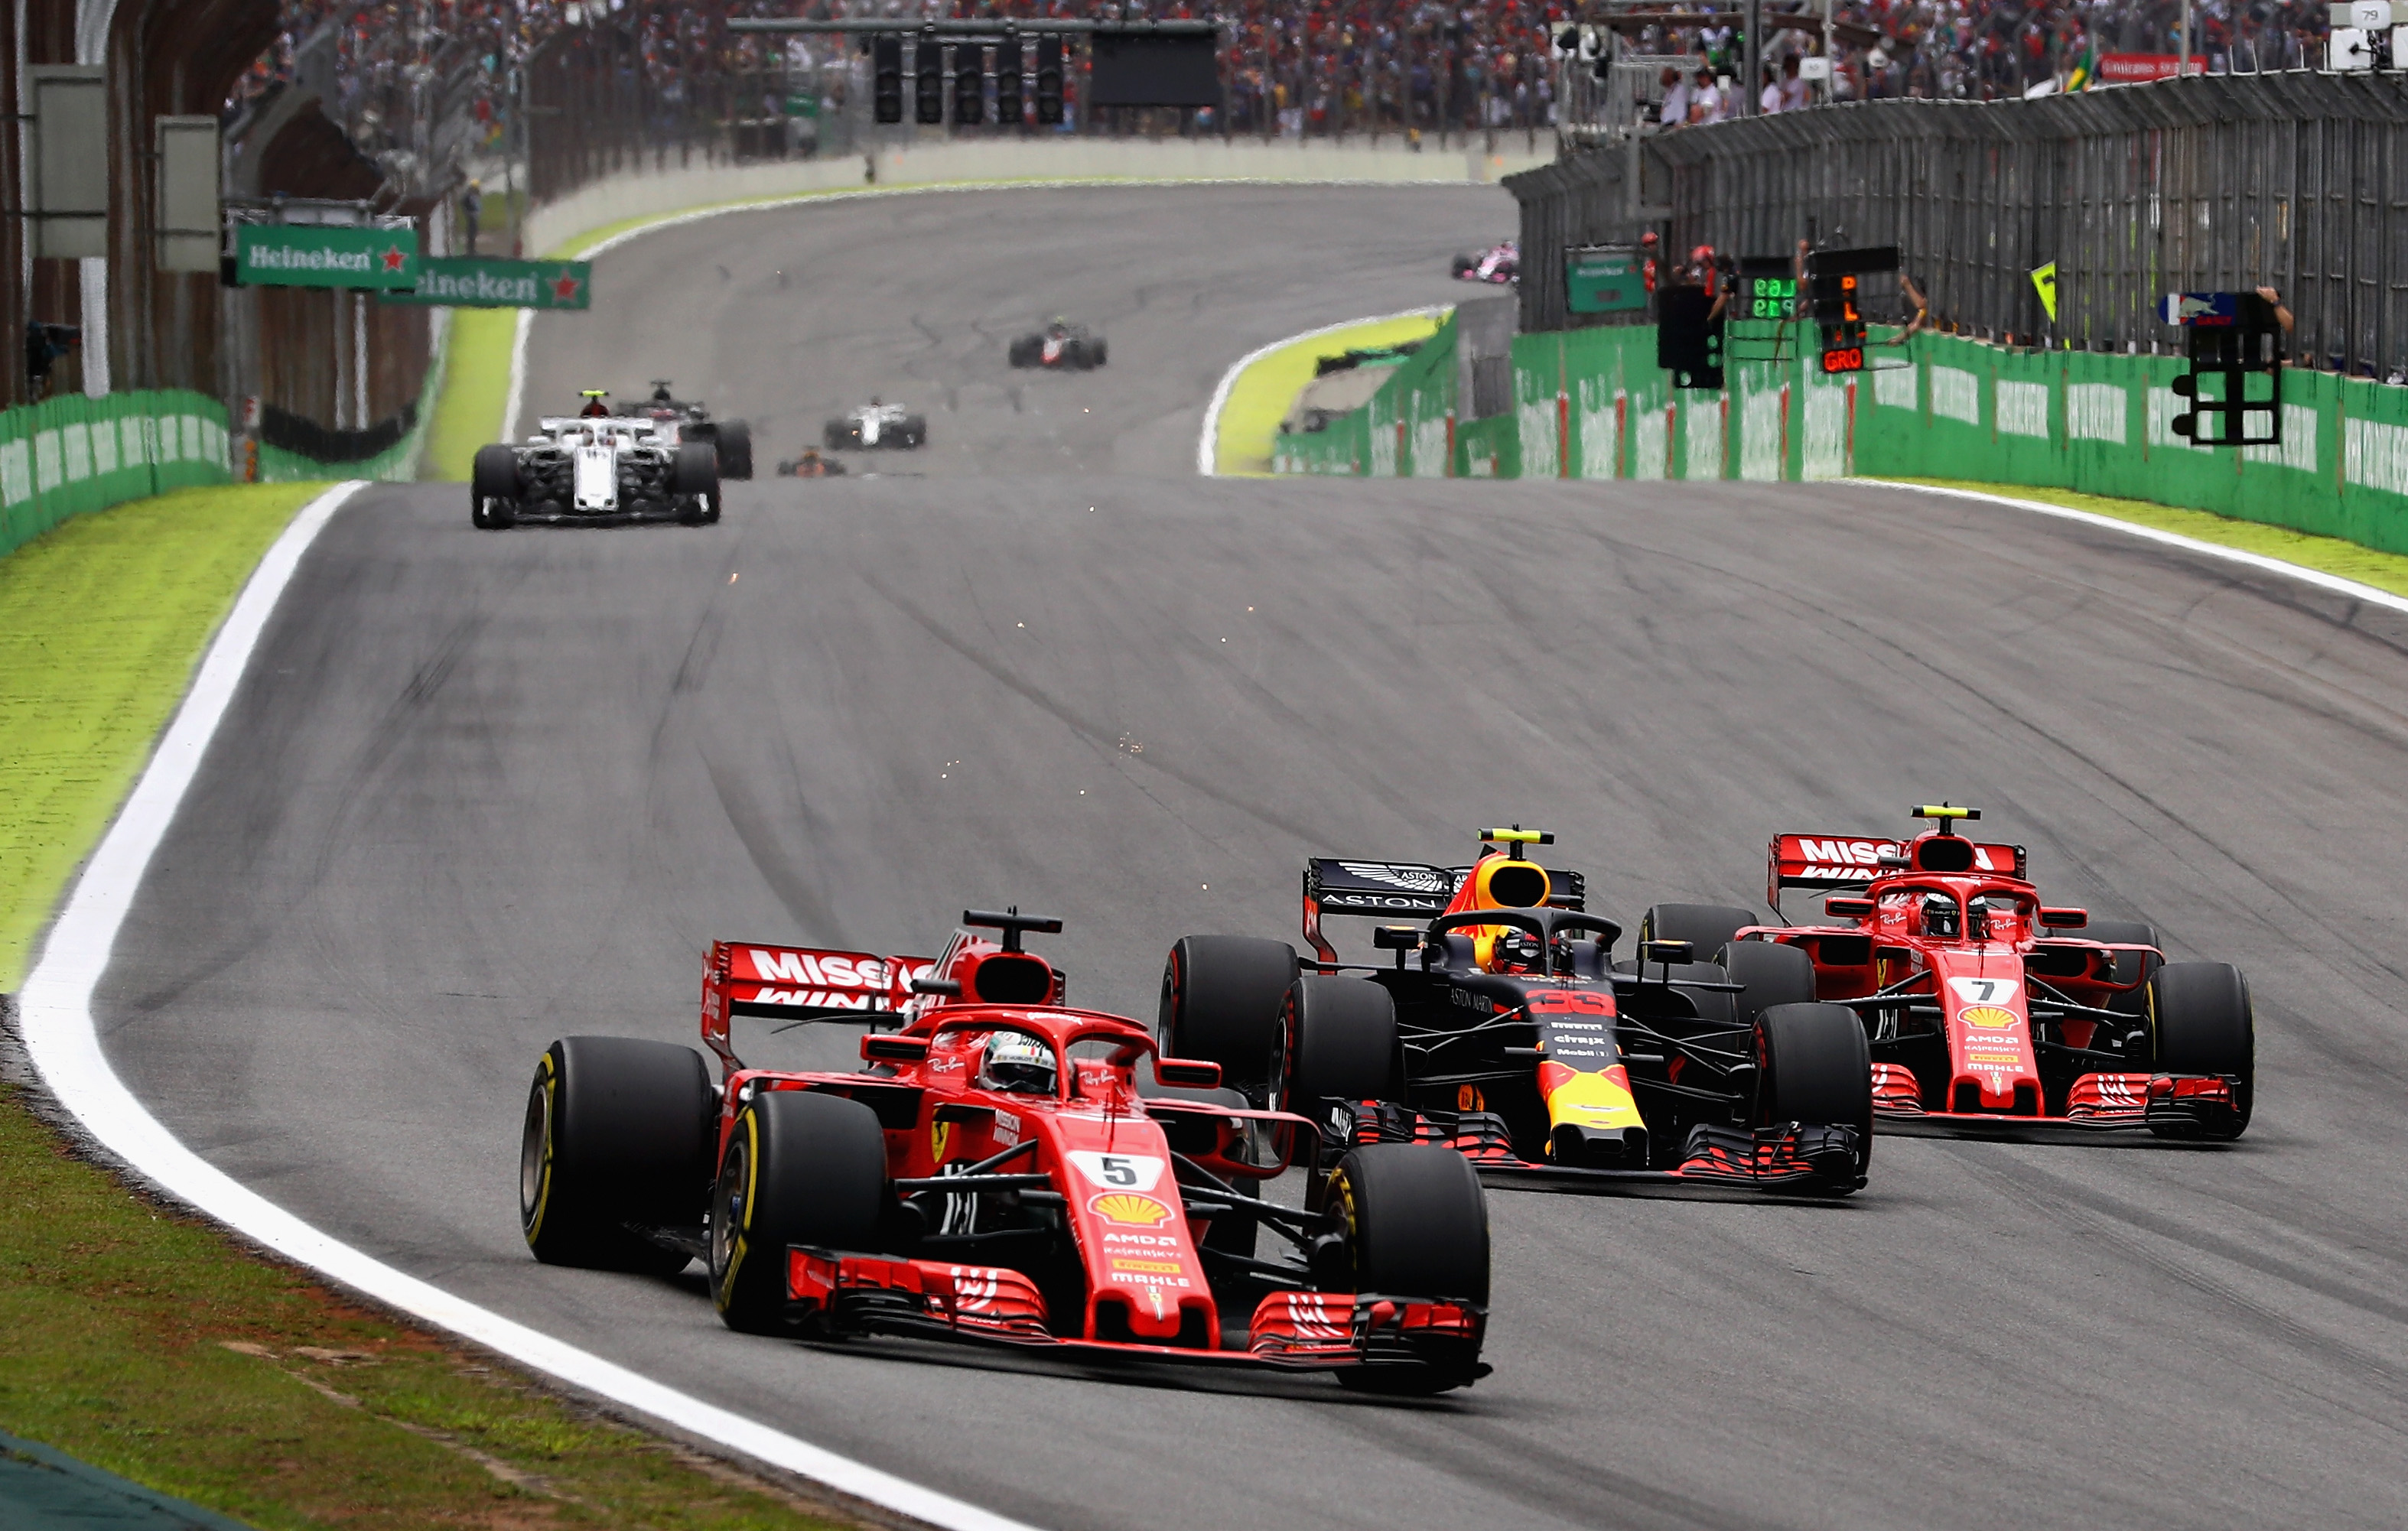 Debate continues over future of Brazilian GP